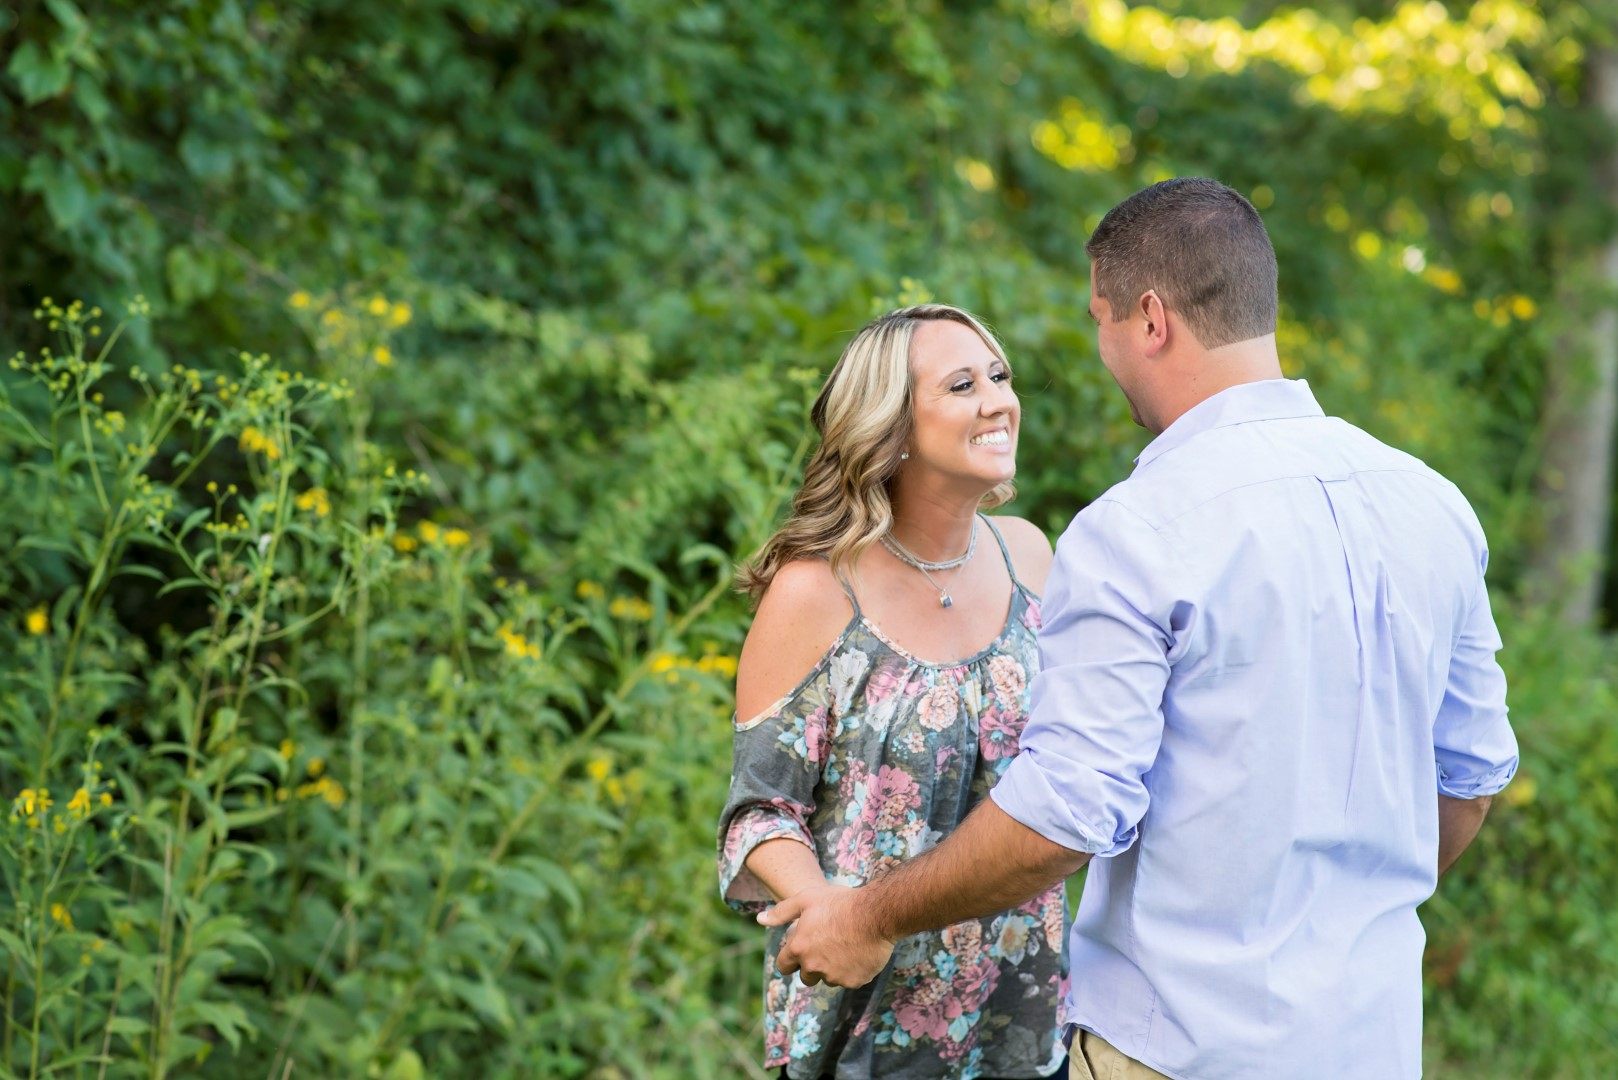 LeighAnn_Beau_Engagement_Collection_06 (Large).jpg